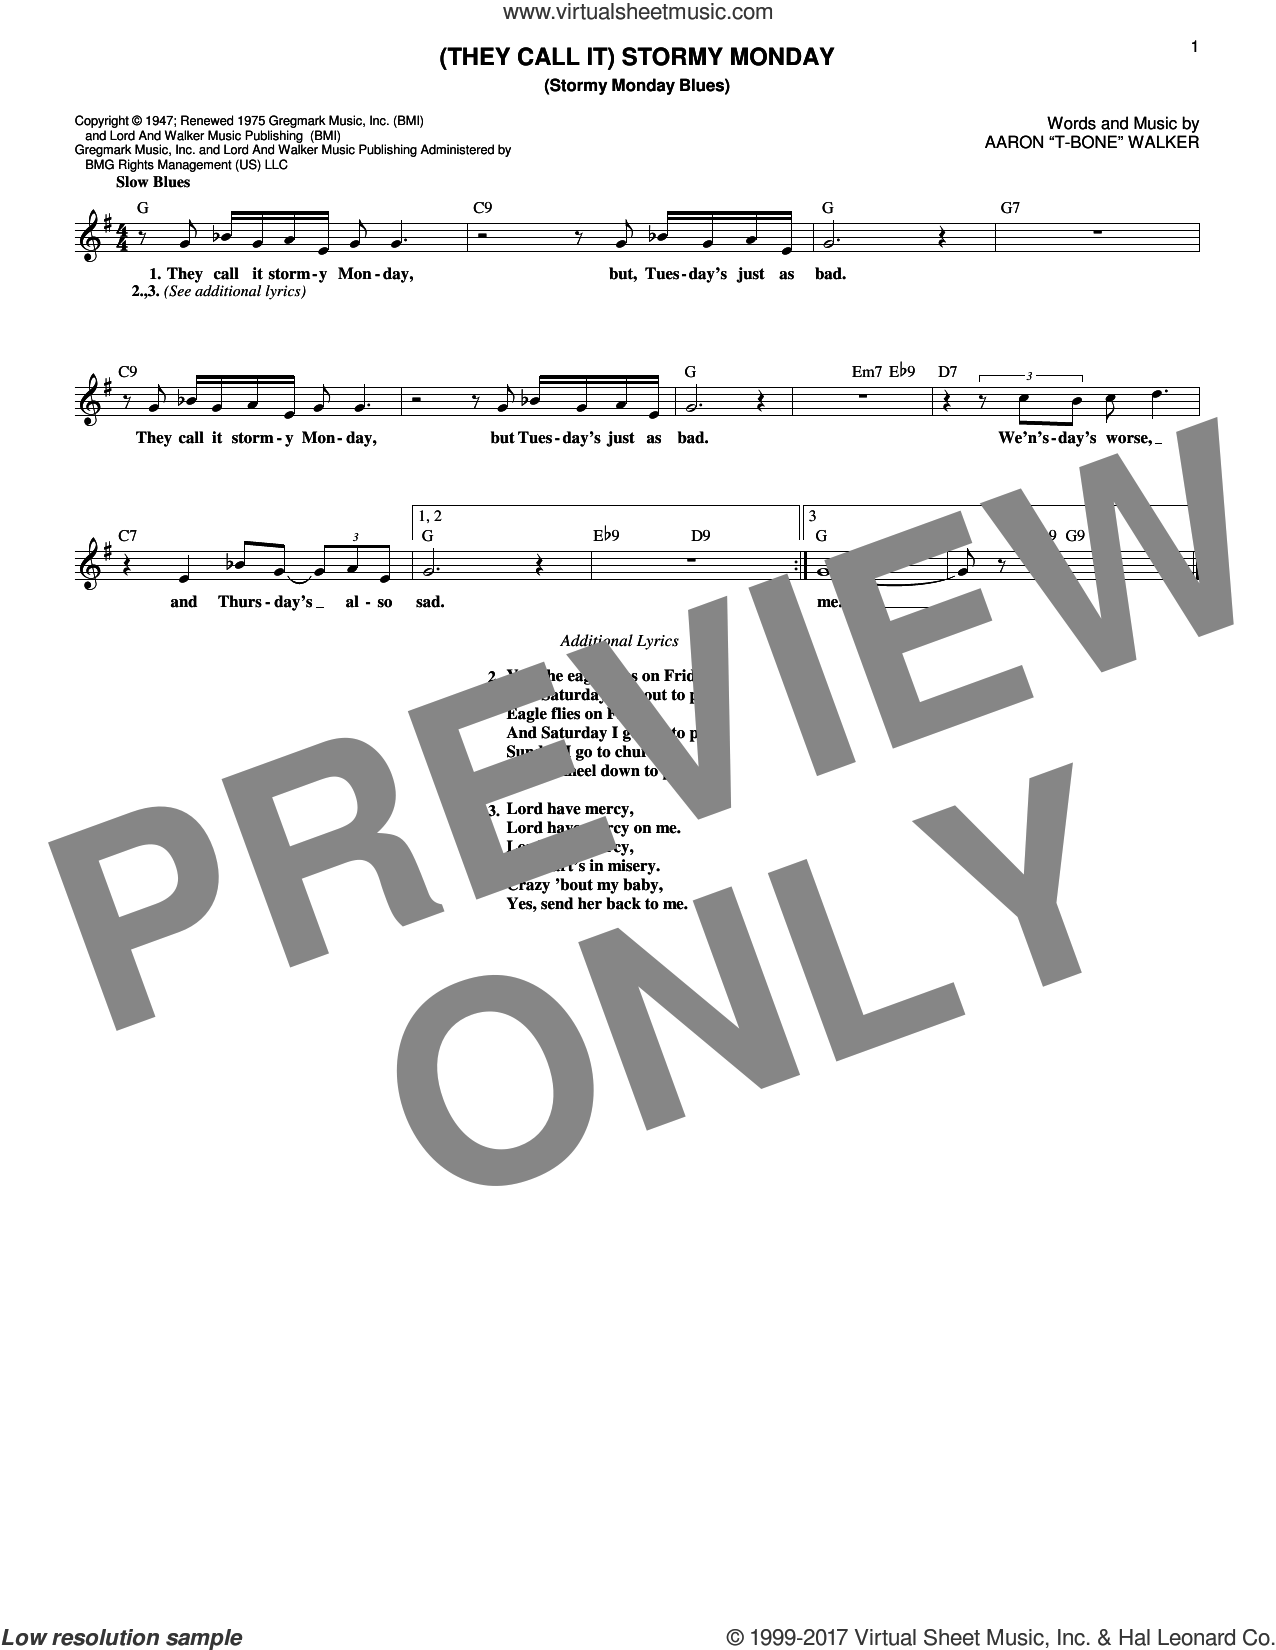 (They Call It) Stormy Monday (Stormy Monday Blues) sheet music for voice and other instruments (fake book) by Aaron